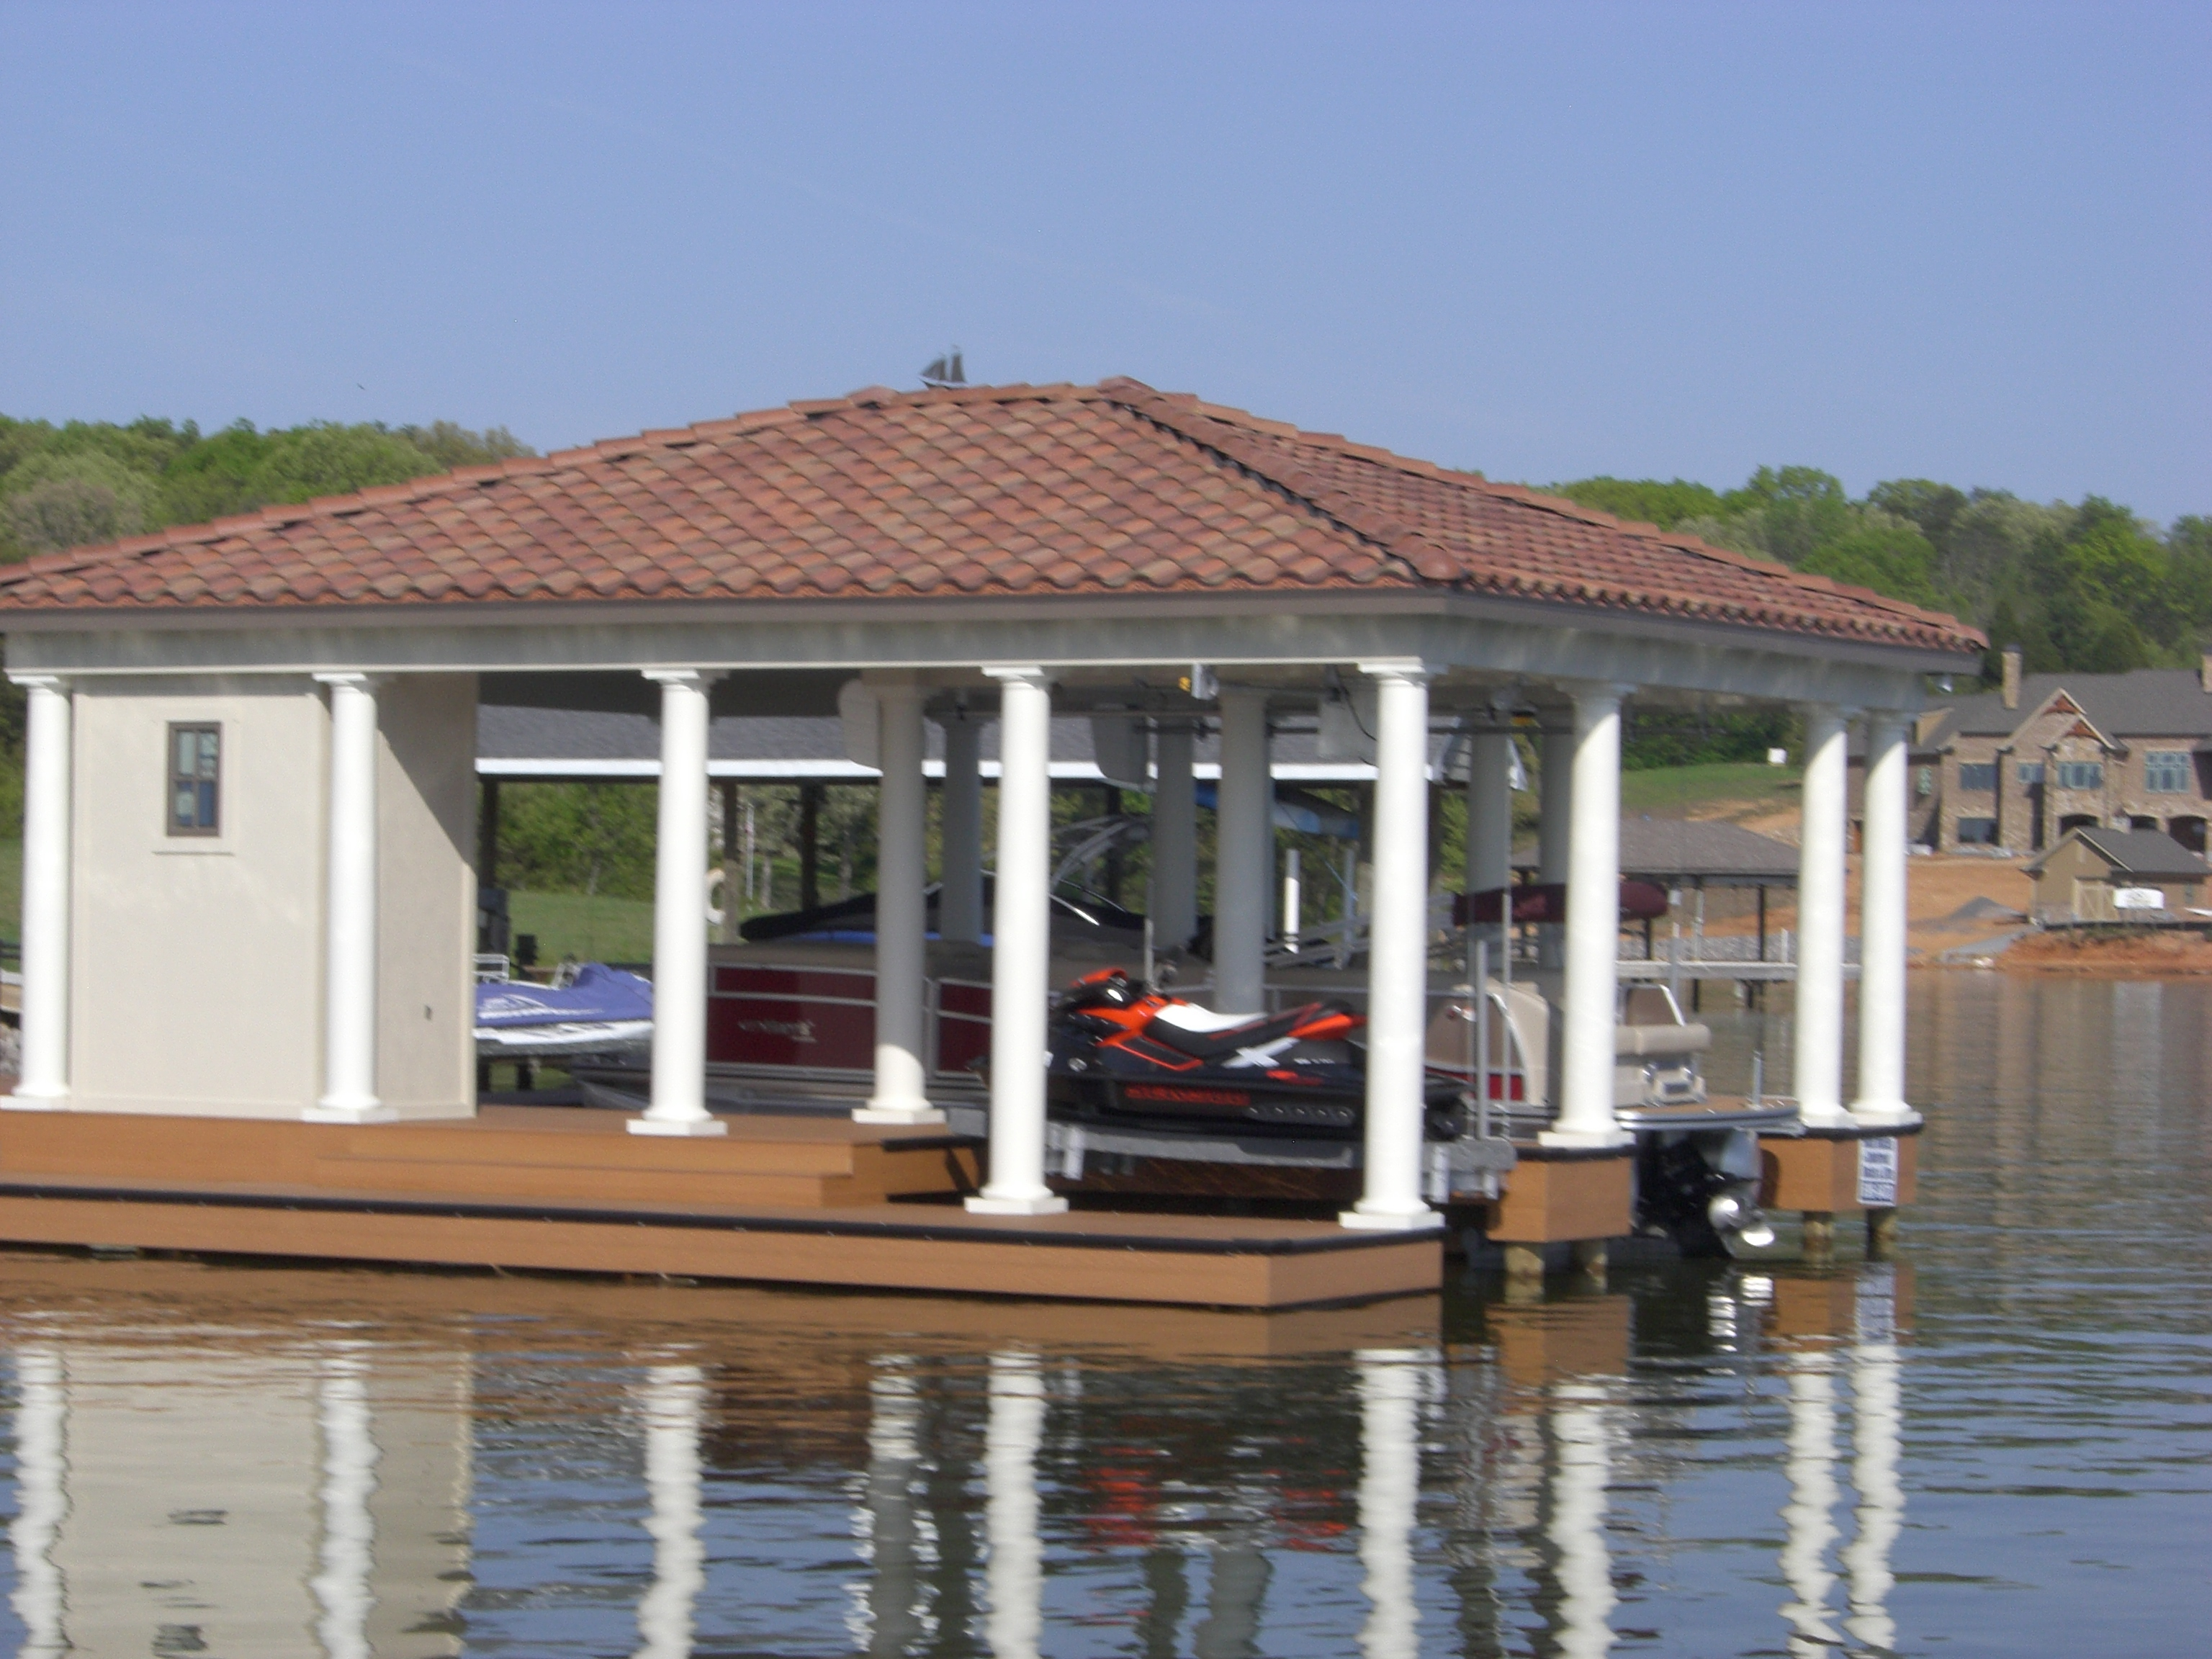 Timotty guide boat dock house plans for Boat house plans pictures